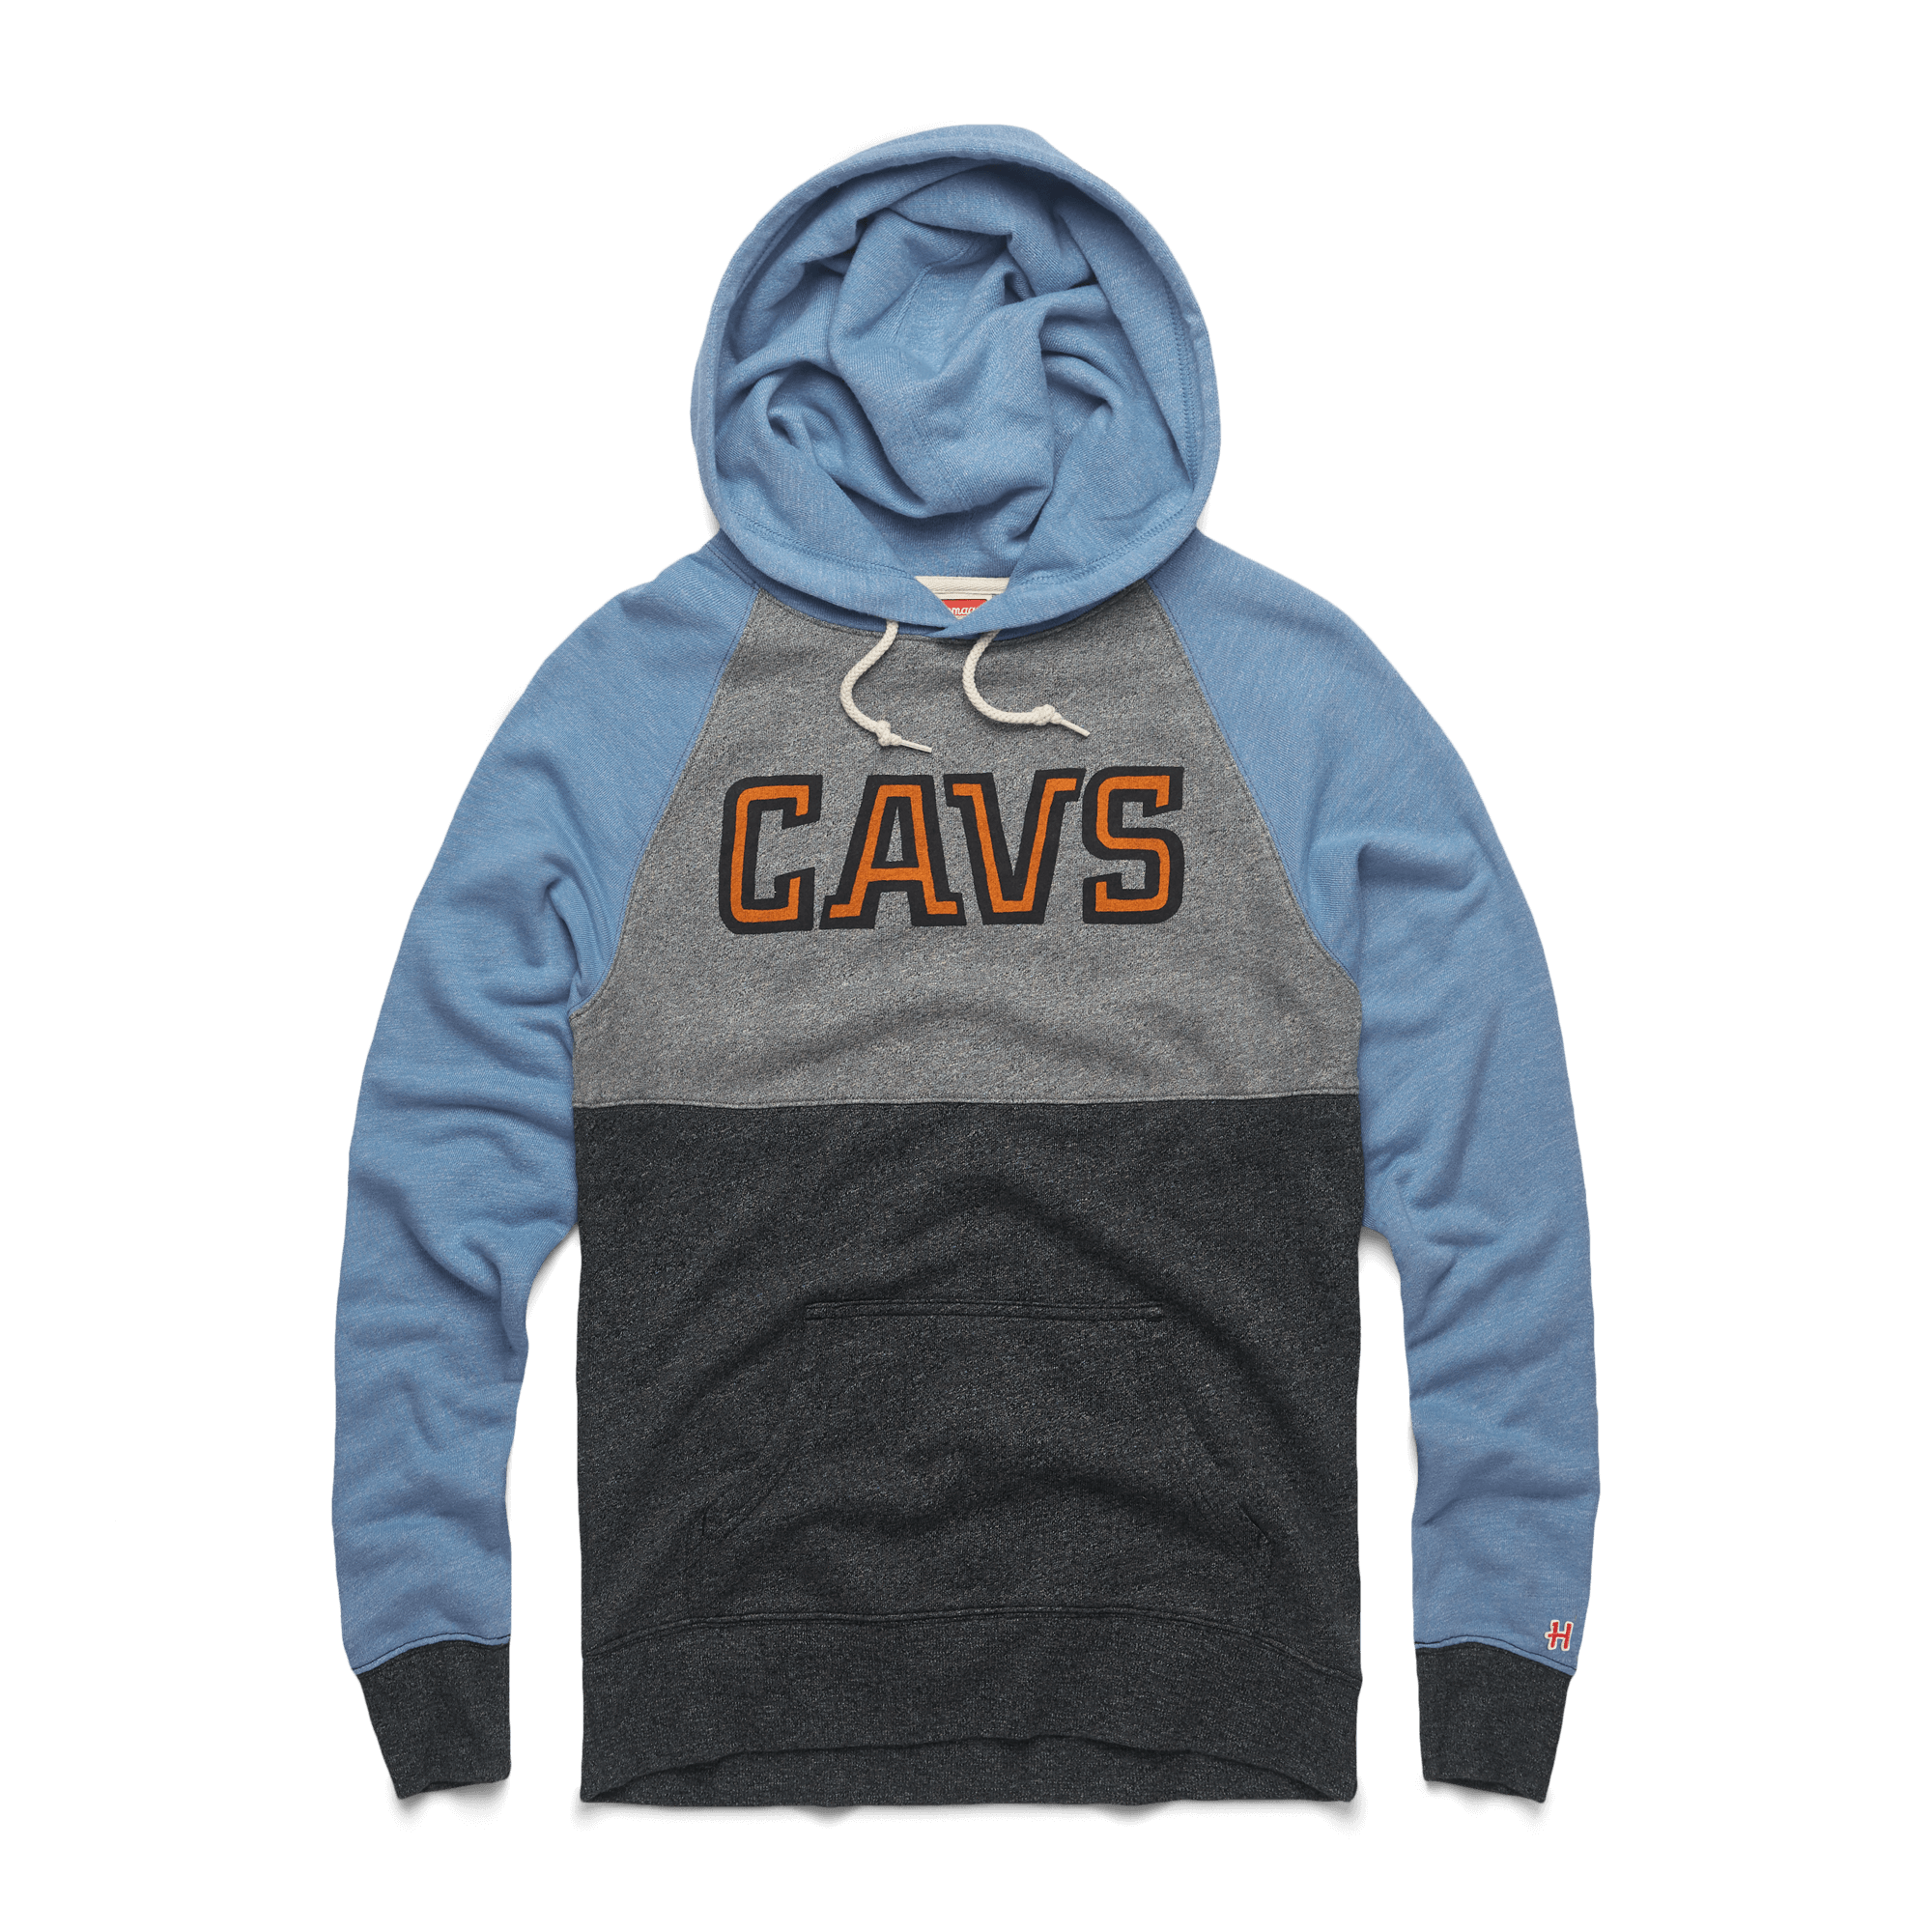 e342ddd07f9 Retro Cleveland Cavs Officially Licensed NBA Cavaliers Apparel – HOMAGE